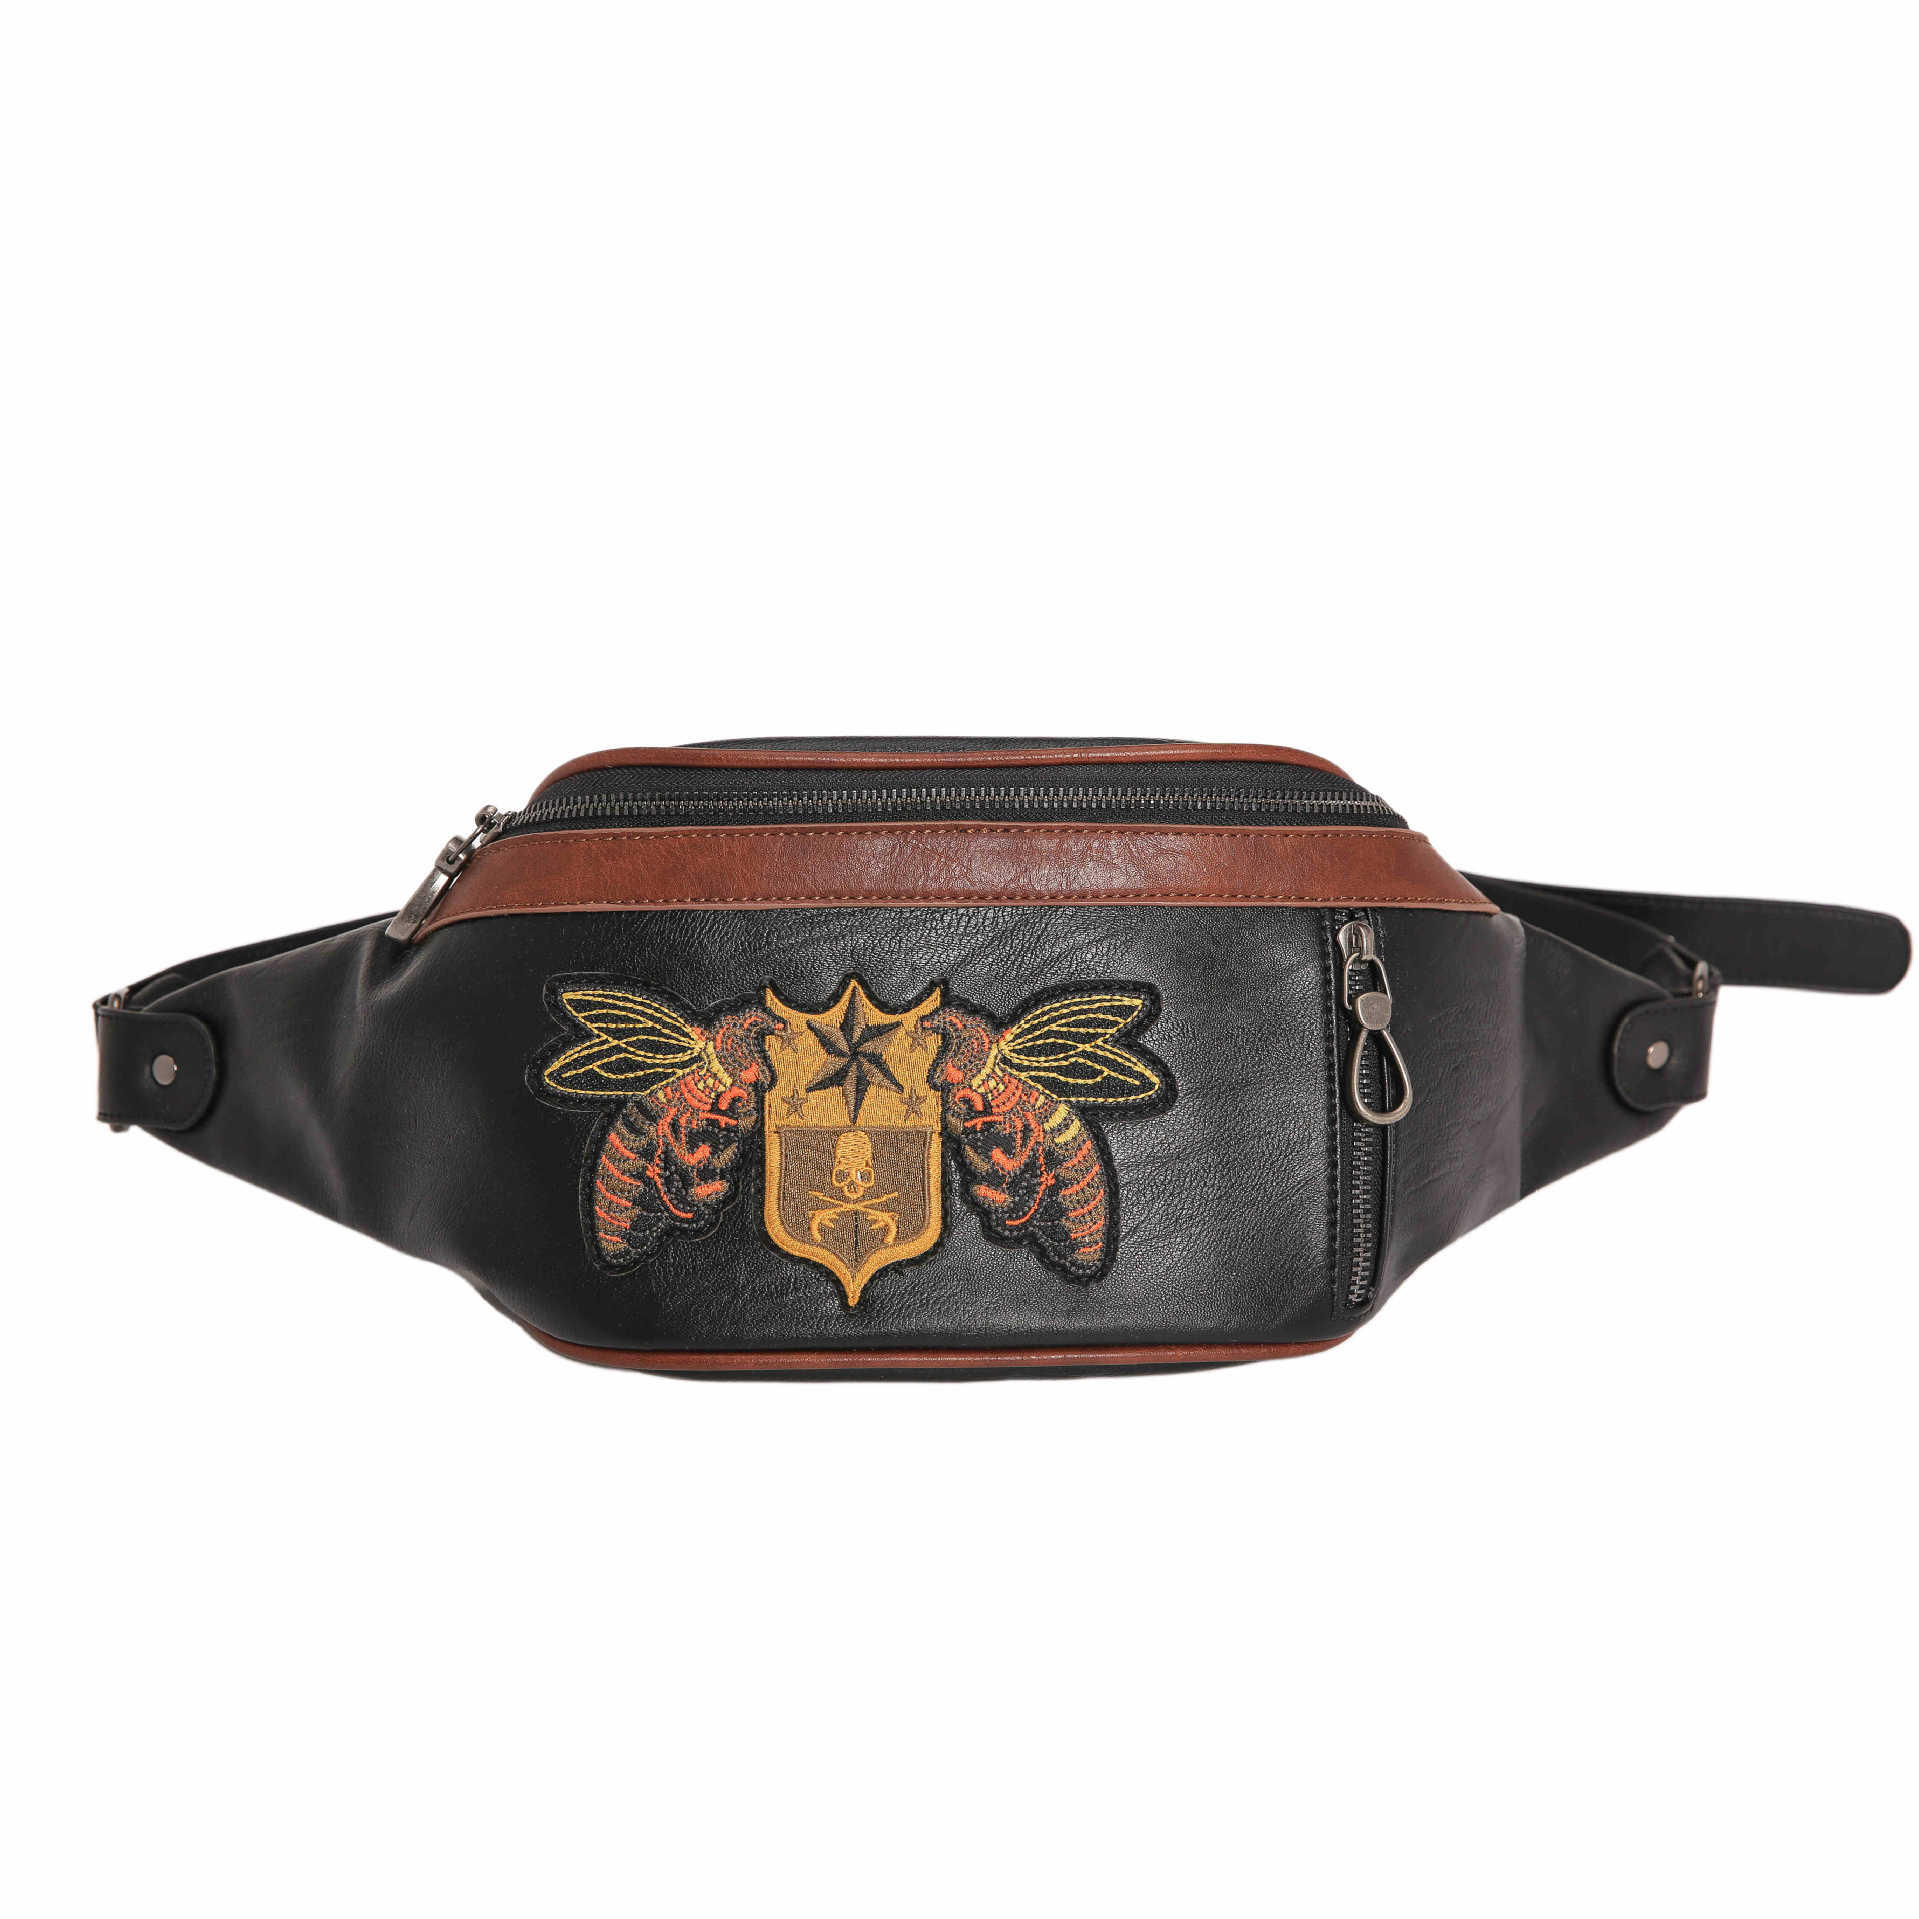 Men Embroidery Waist Bag with Adjustable Belt Strap for Outdoors Business Traveling Casual